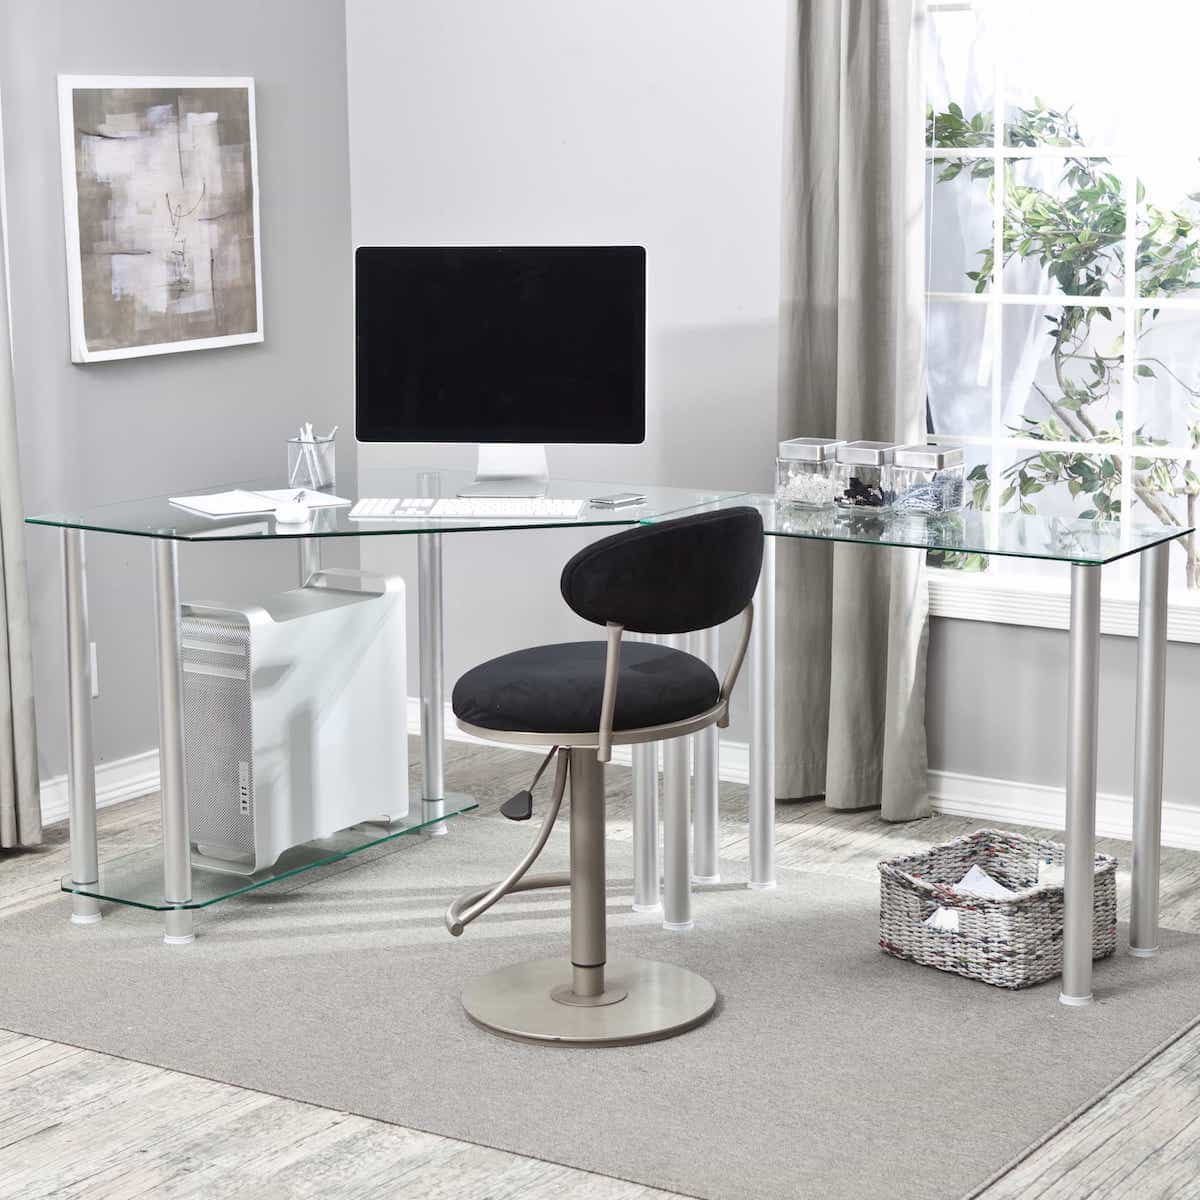 Modern Glass L Shaped Computer Desk With Chrome Finishing For Modern Home Office (View 4 of 8)